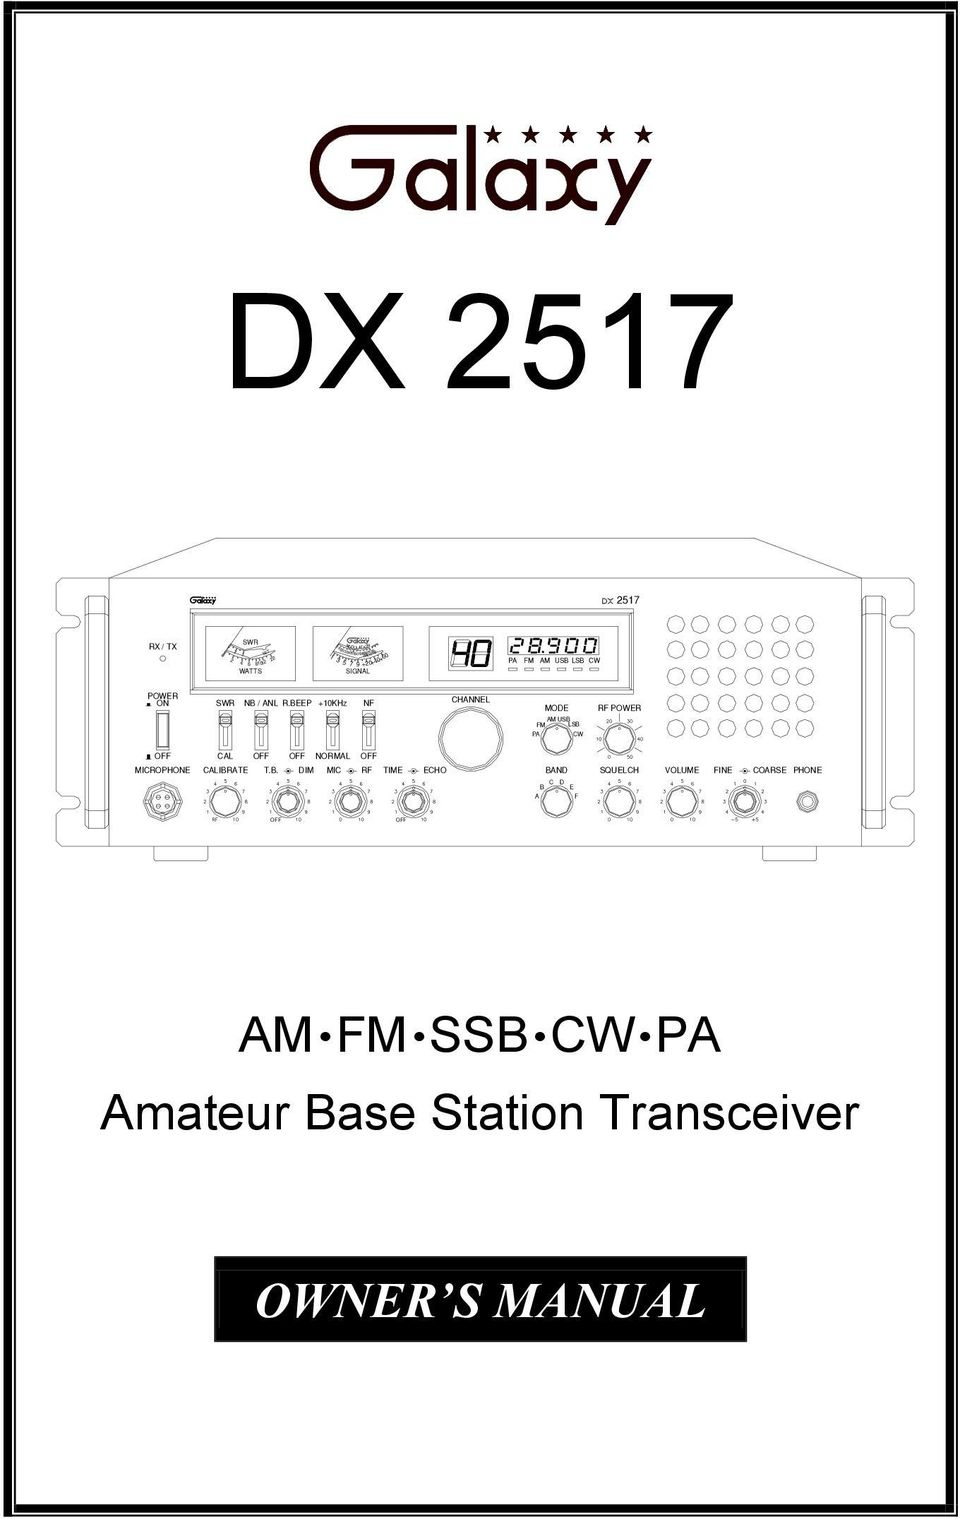 BEEP +10KHz NF CHANNEL MODE RF POWER AM USB FM LSB PA CW CAL NORMAL MICROPHONE CALIBRATE T.B. DIM MIC